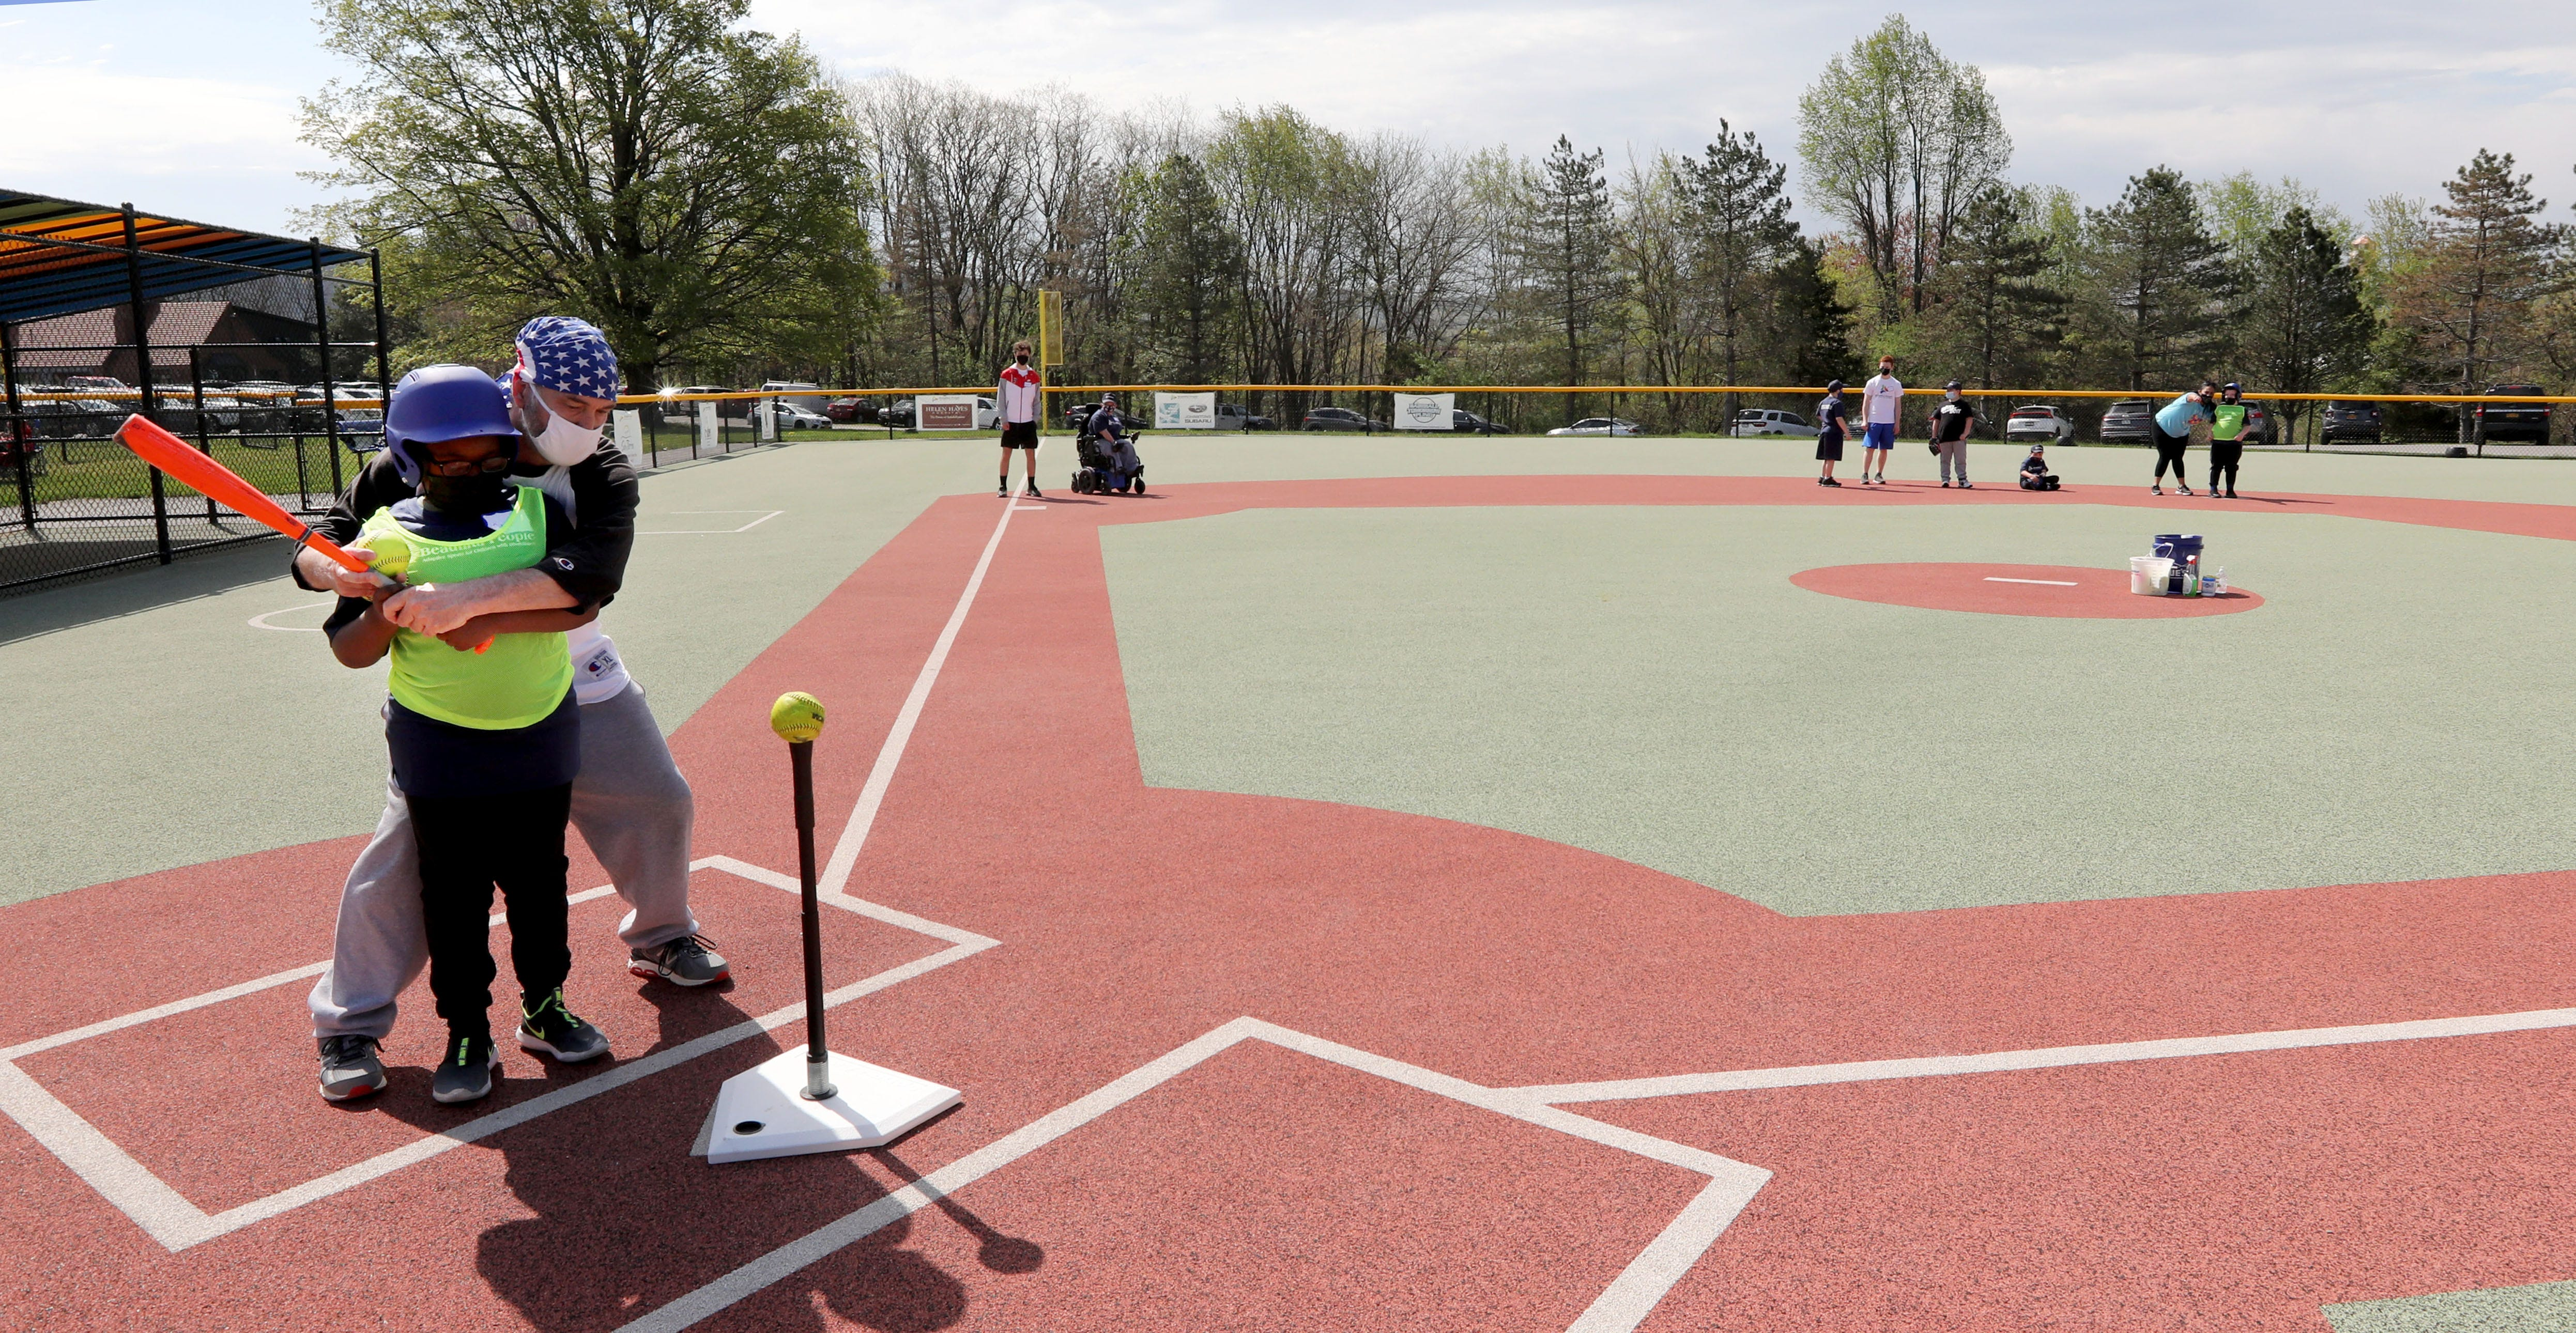 Ryan Howard 8, of Middletown, N.Y. is assisted by Bob McClorey of Warwick, N.Y. as he hits during opening day for Beautiful People Baseball in Warwick, May 2, 2021. The baseball program is one of the sports offered by Beautiful People, which provided adaptive sports for children with disabilities.